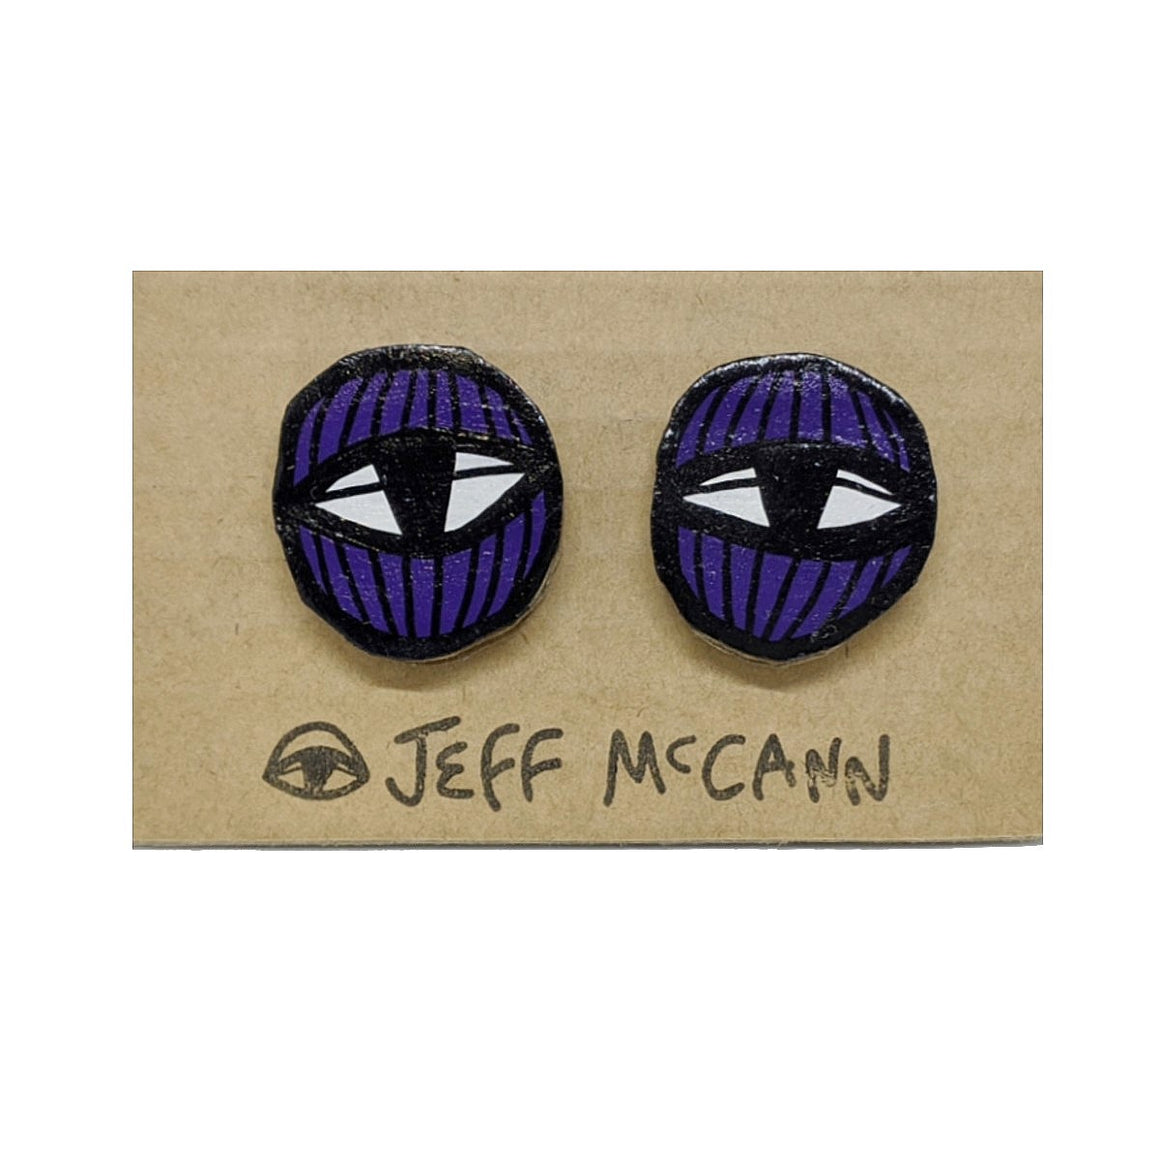 A Pair of stud Earrings made of hand painted cardboard. A geometric design in the shape of two eyes in purple and white.